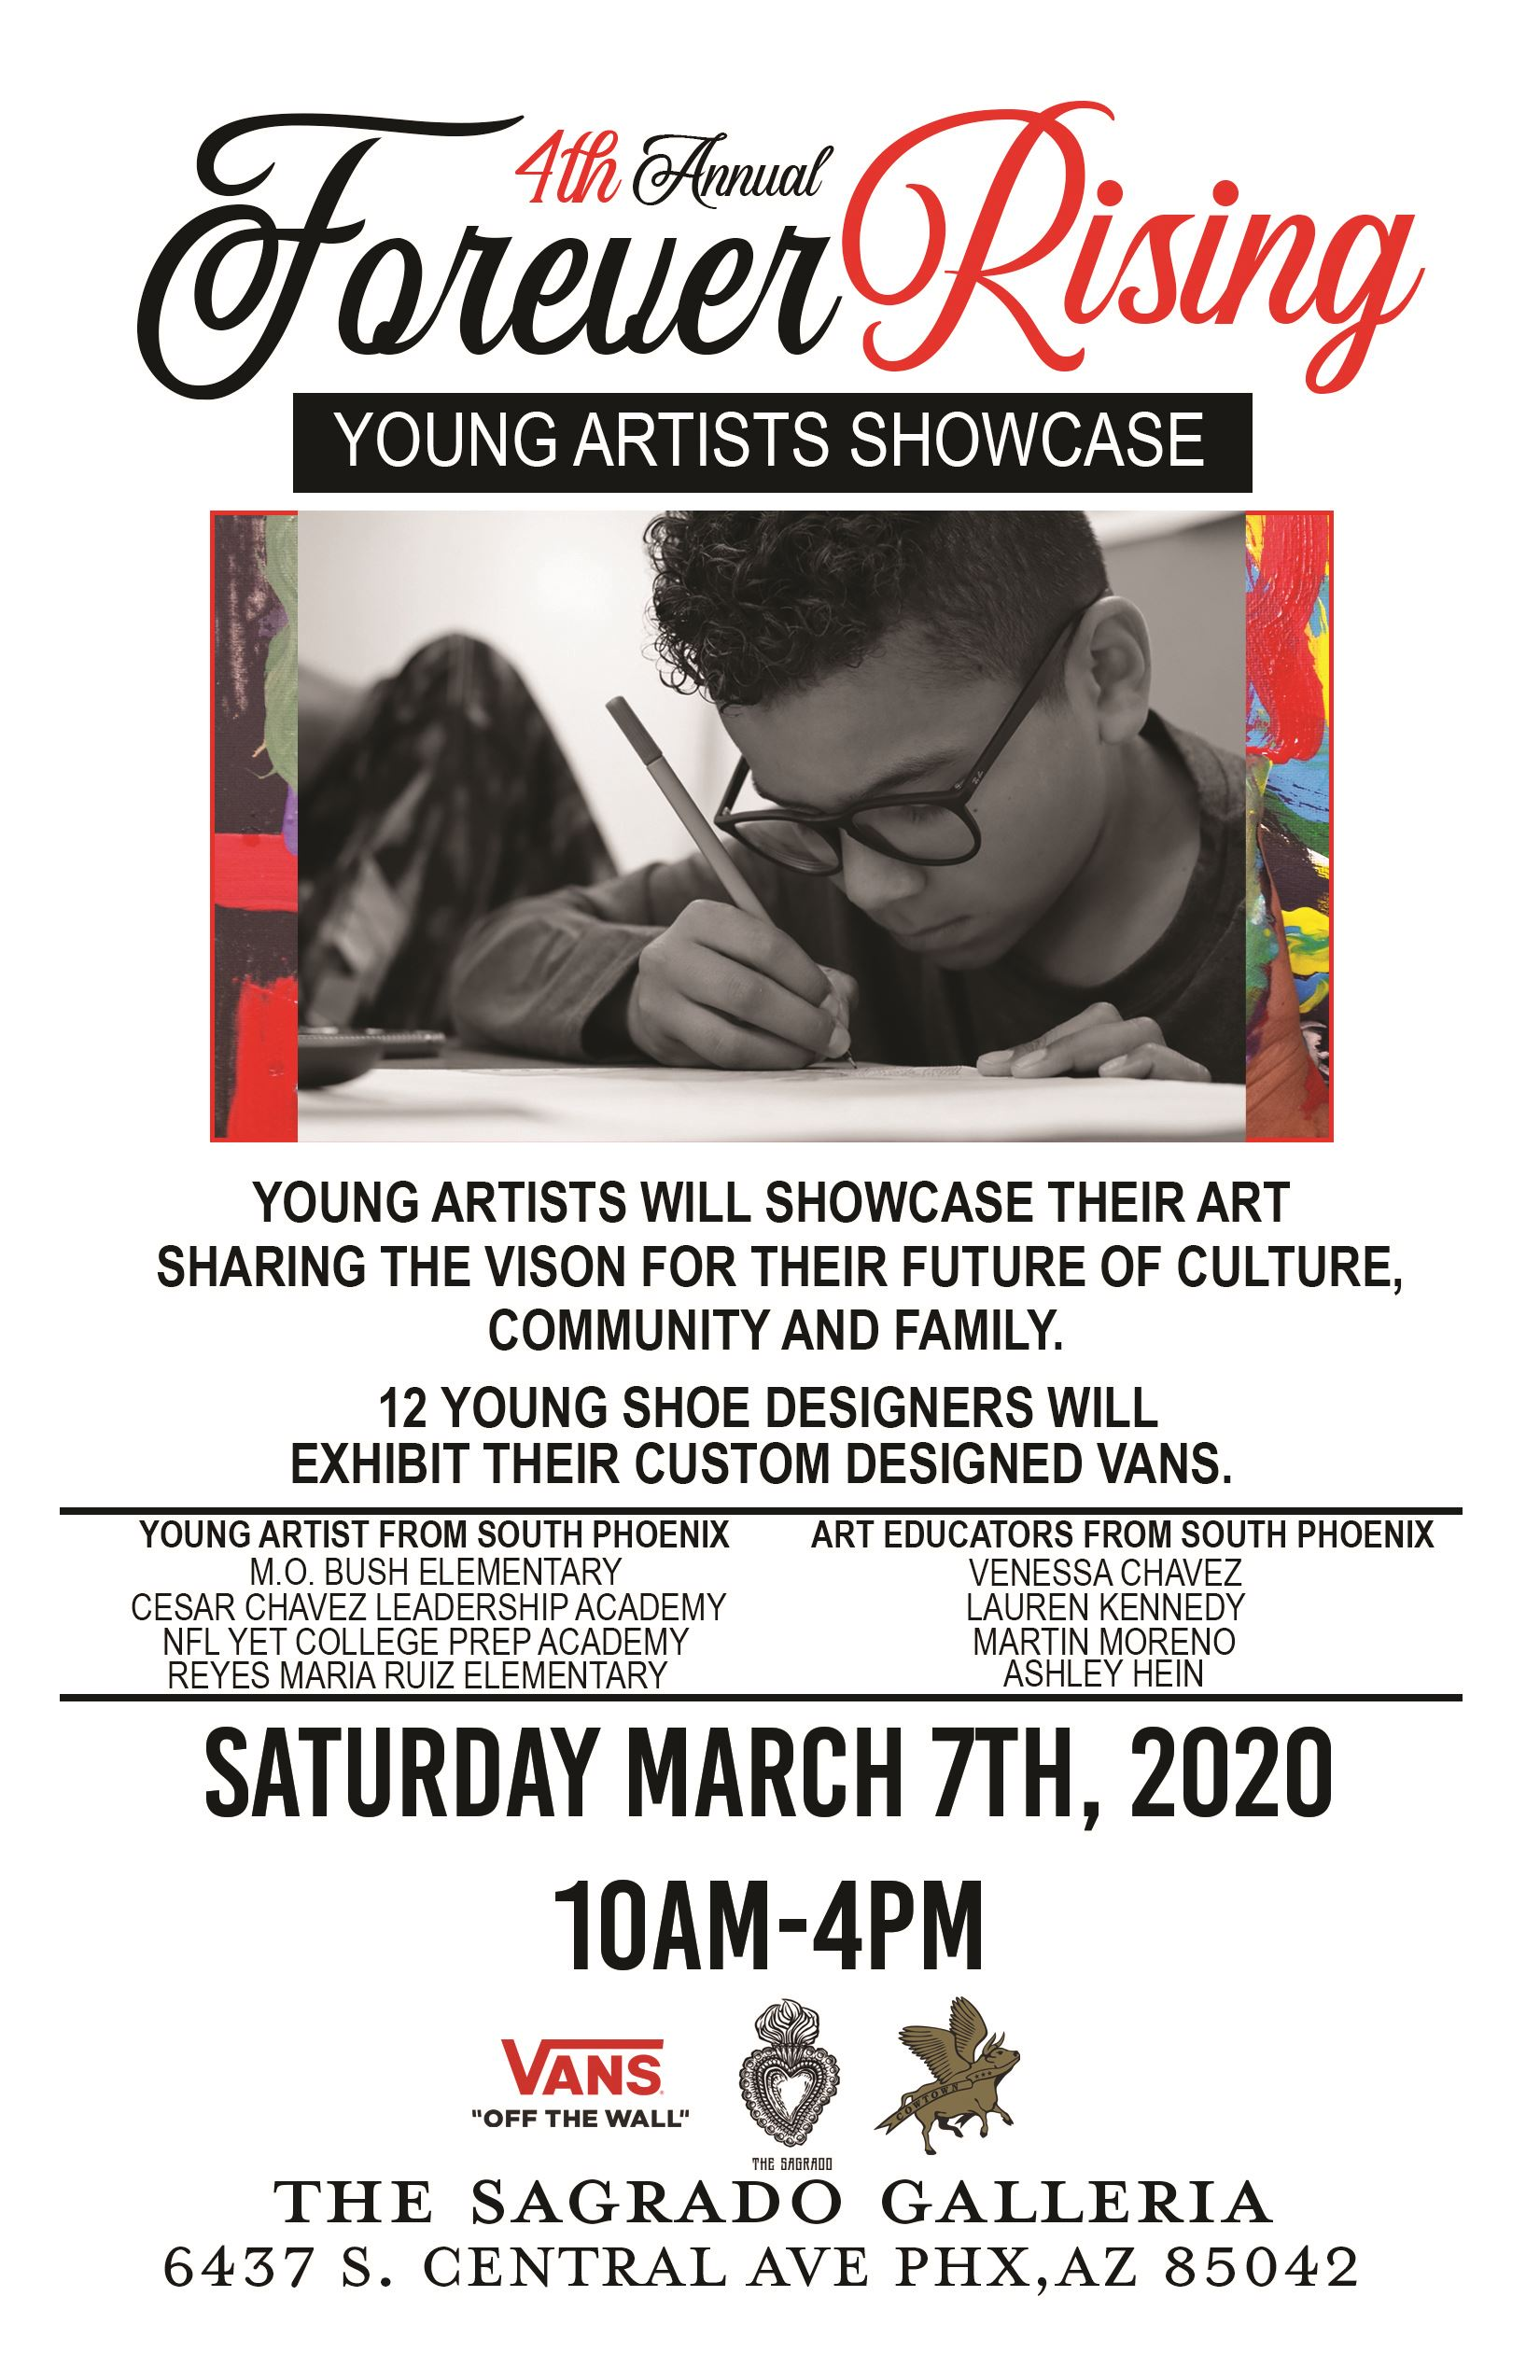 Flyer for 4th Annual Forever Rising Young Artists Showcase Event